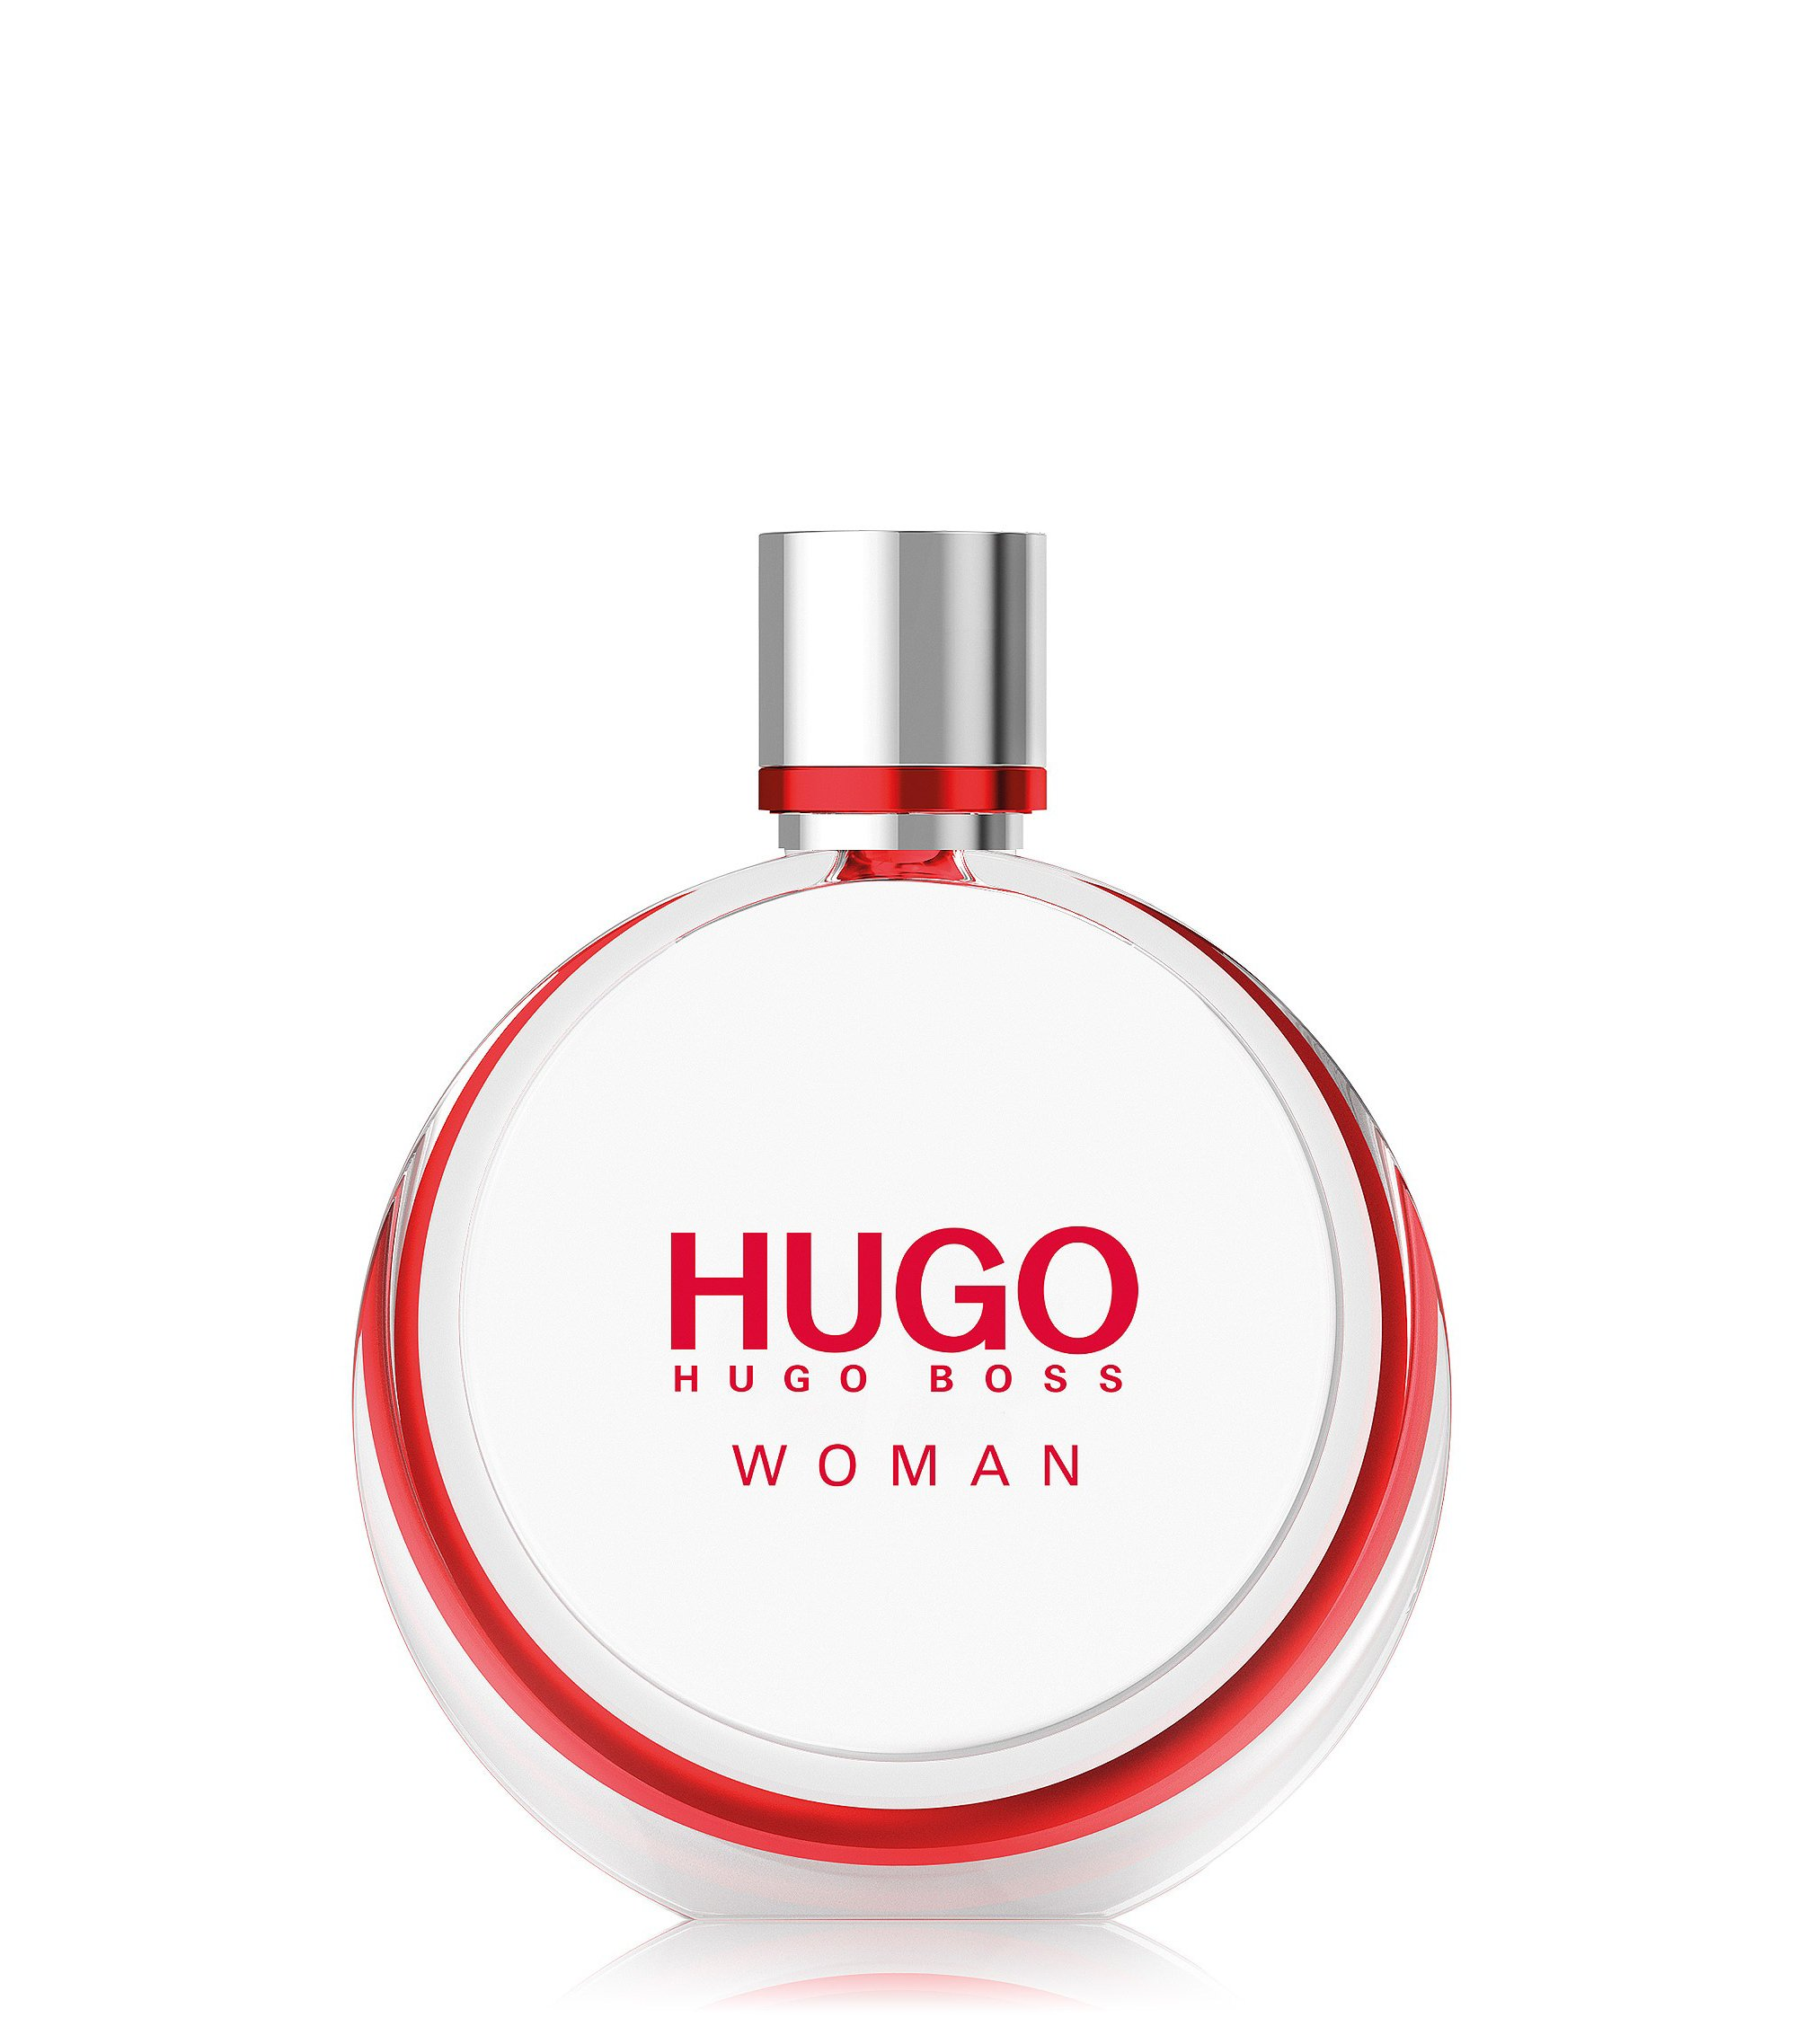 2.5 oz (75 mL) Eau de Parfum | HUGO Woman, Assorted-Pre-Pack